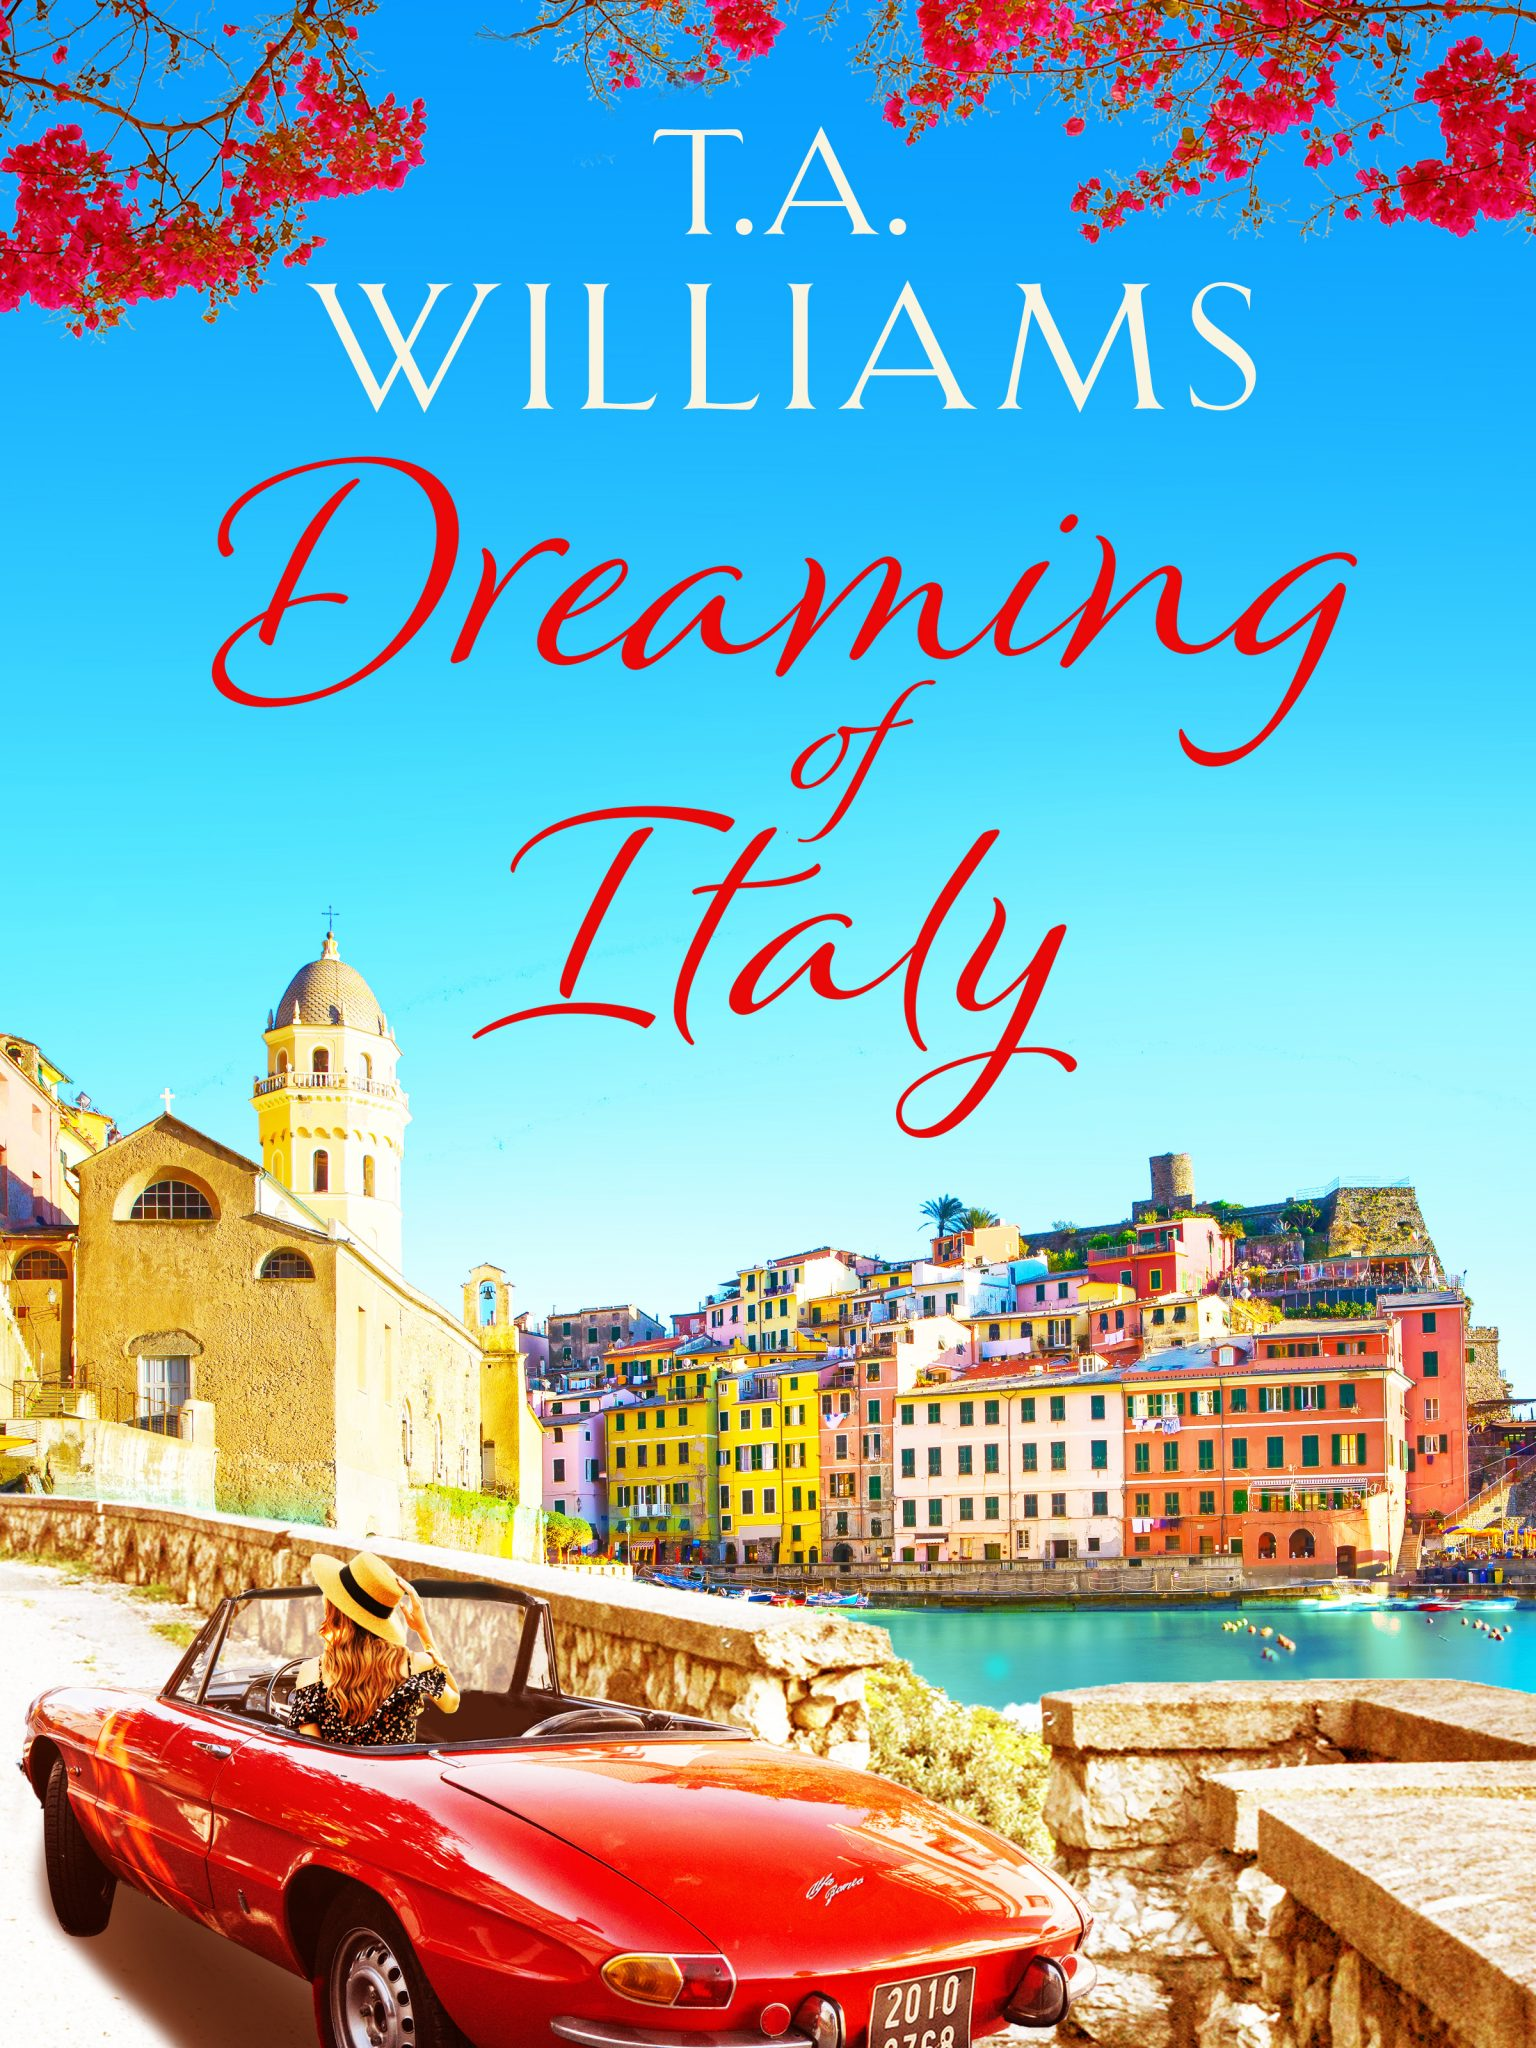 Dreaming of Italy by T. A. Williams